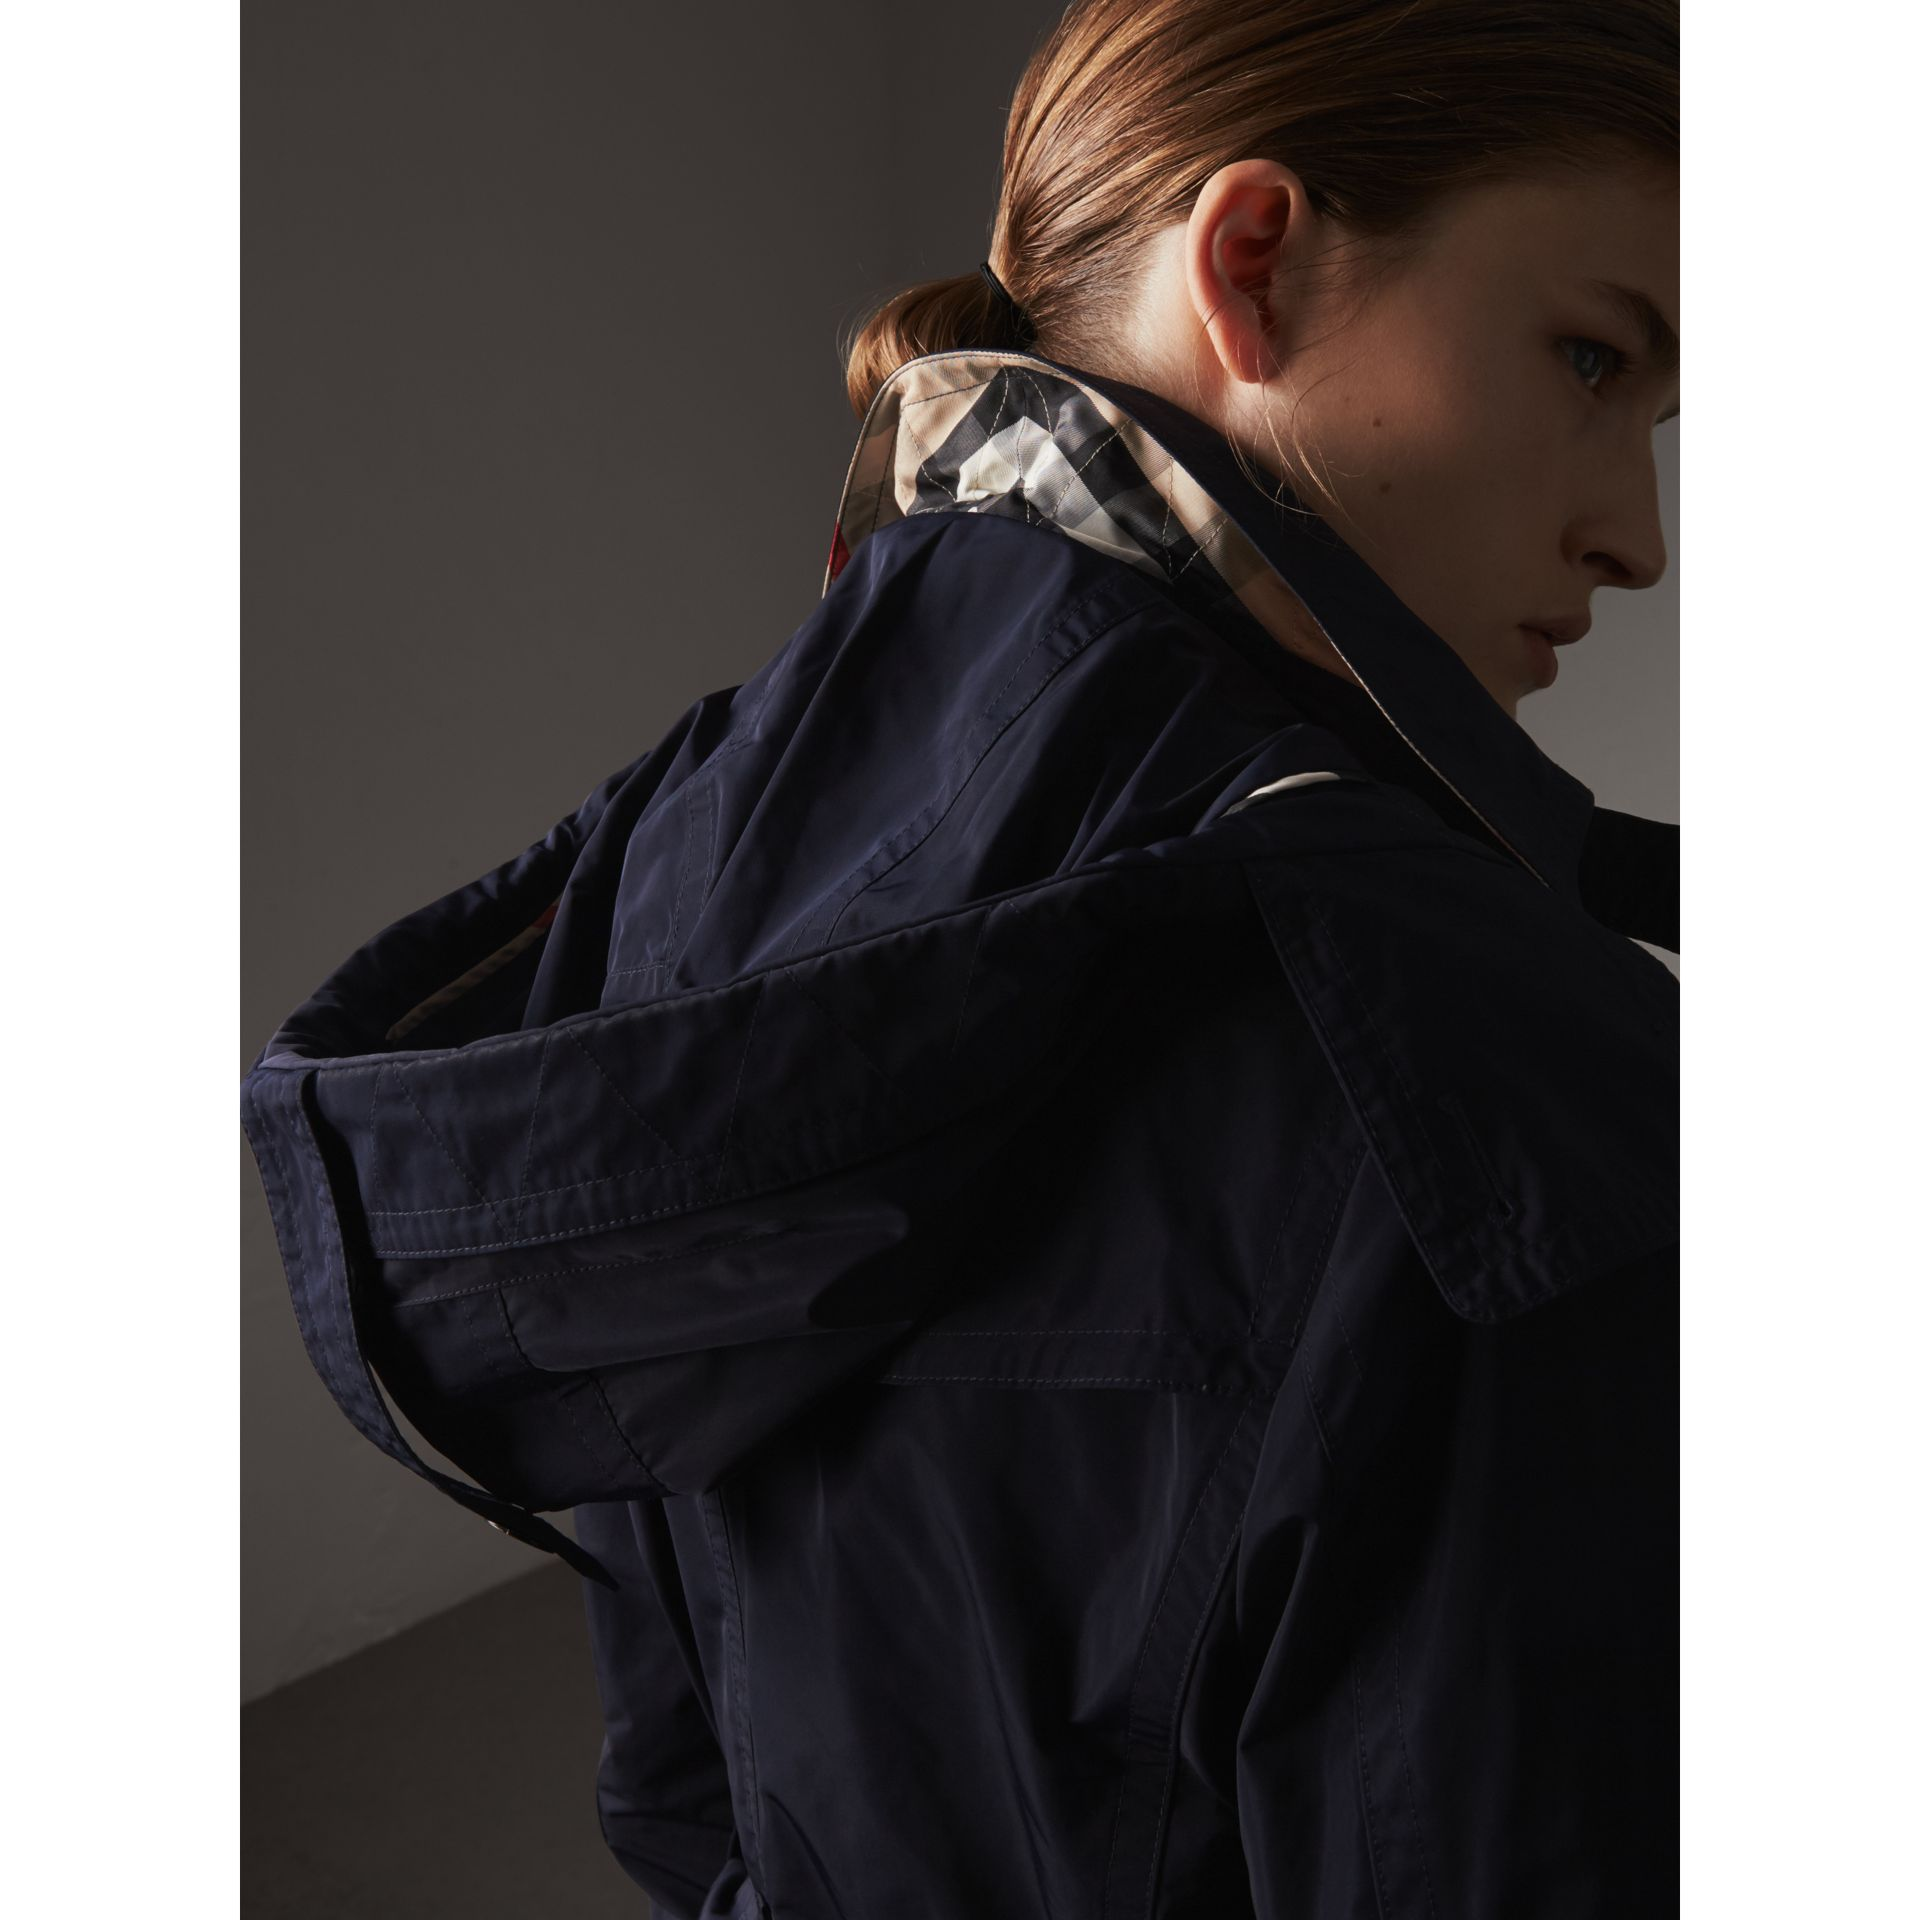 Taffeta Trench Coat with Detachable Hood in Navy - Women | Burberry - gallery image 1